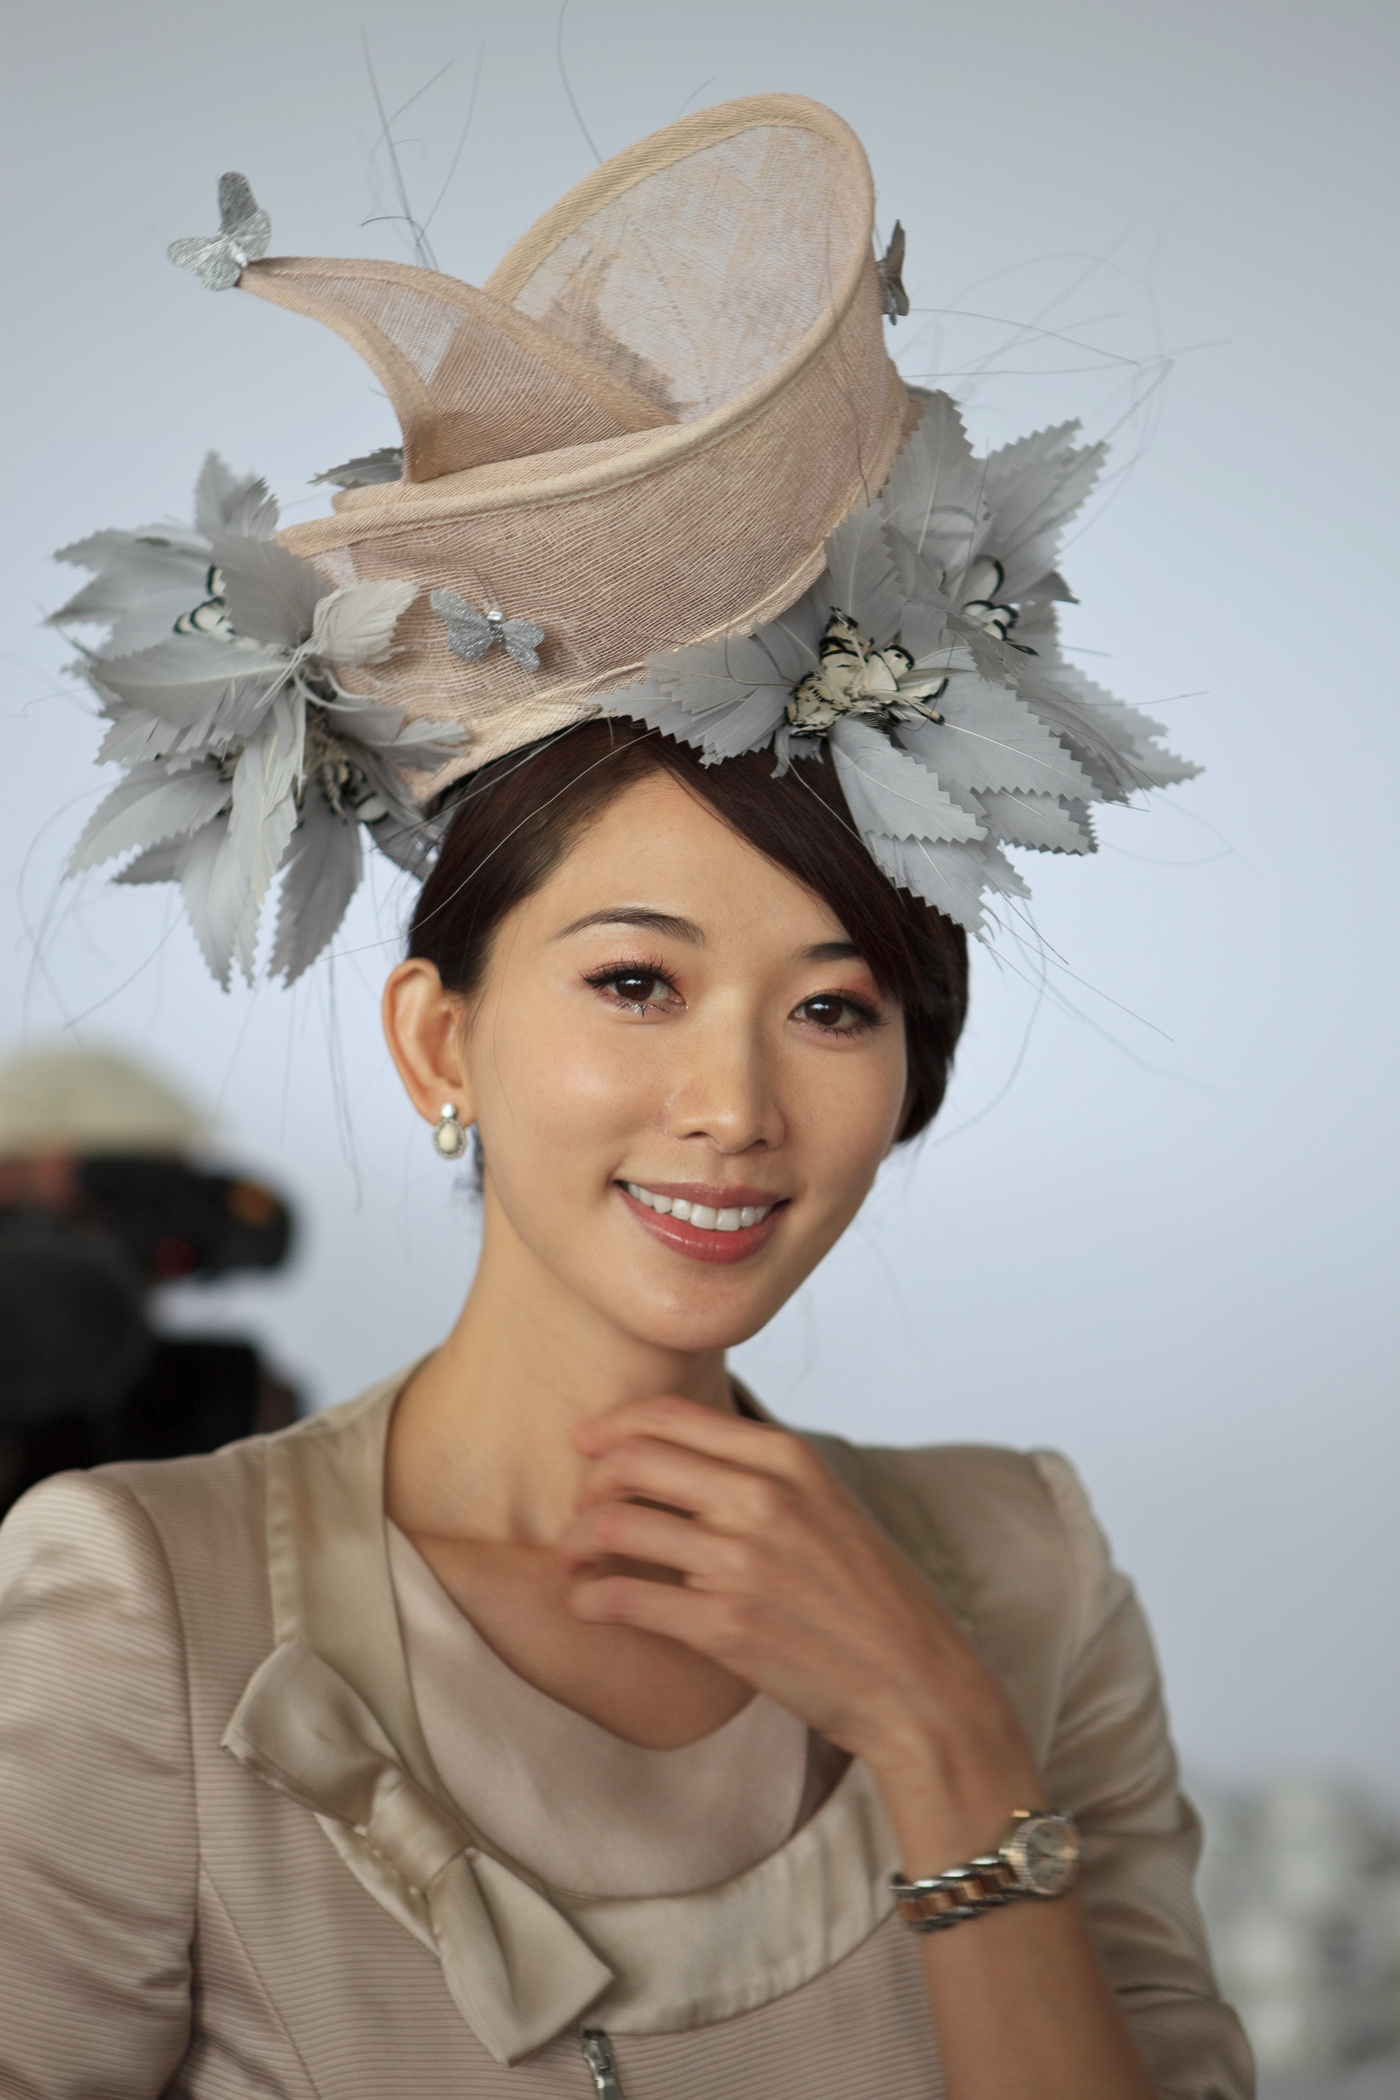 Longines Flat Racing Event: The Asian star Chi Ling Lin discovers the prestigious glamour of Royal Ascot 5